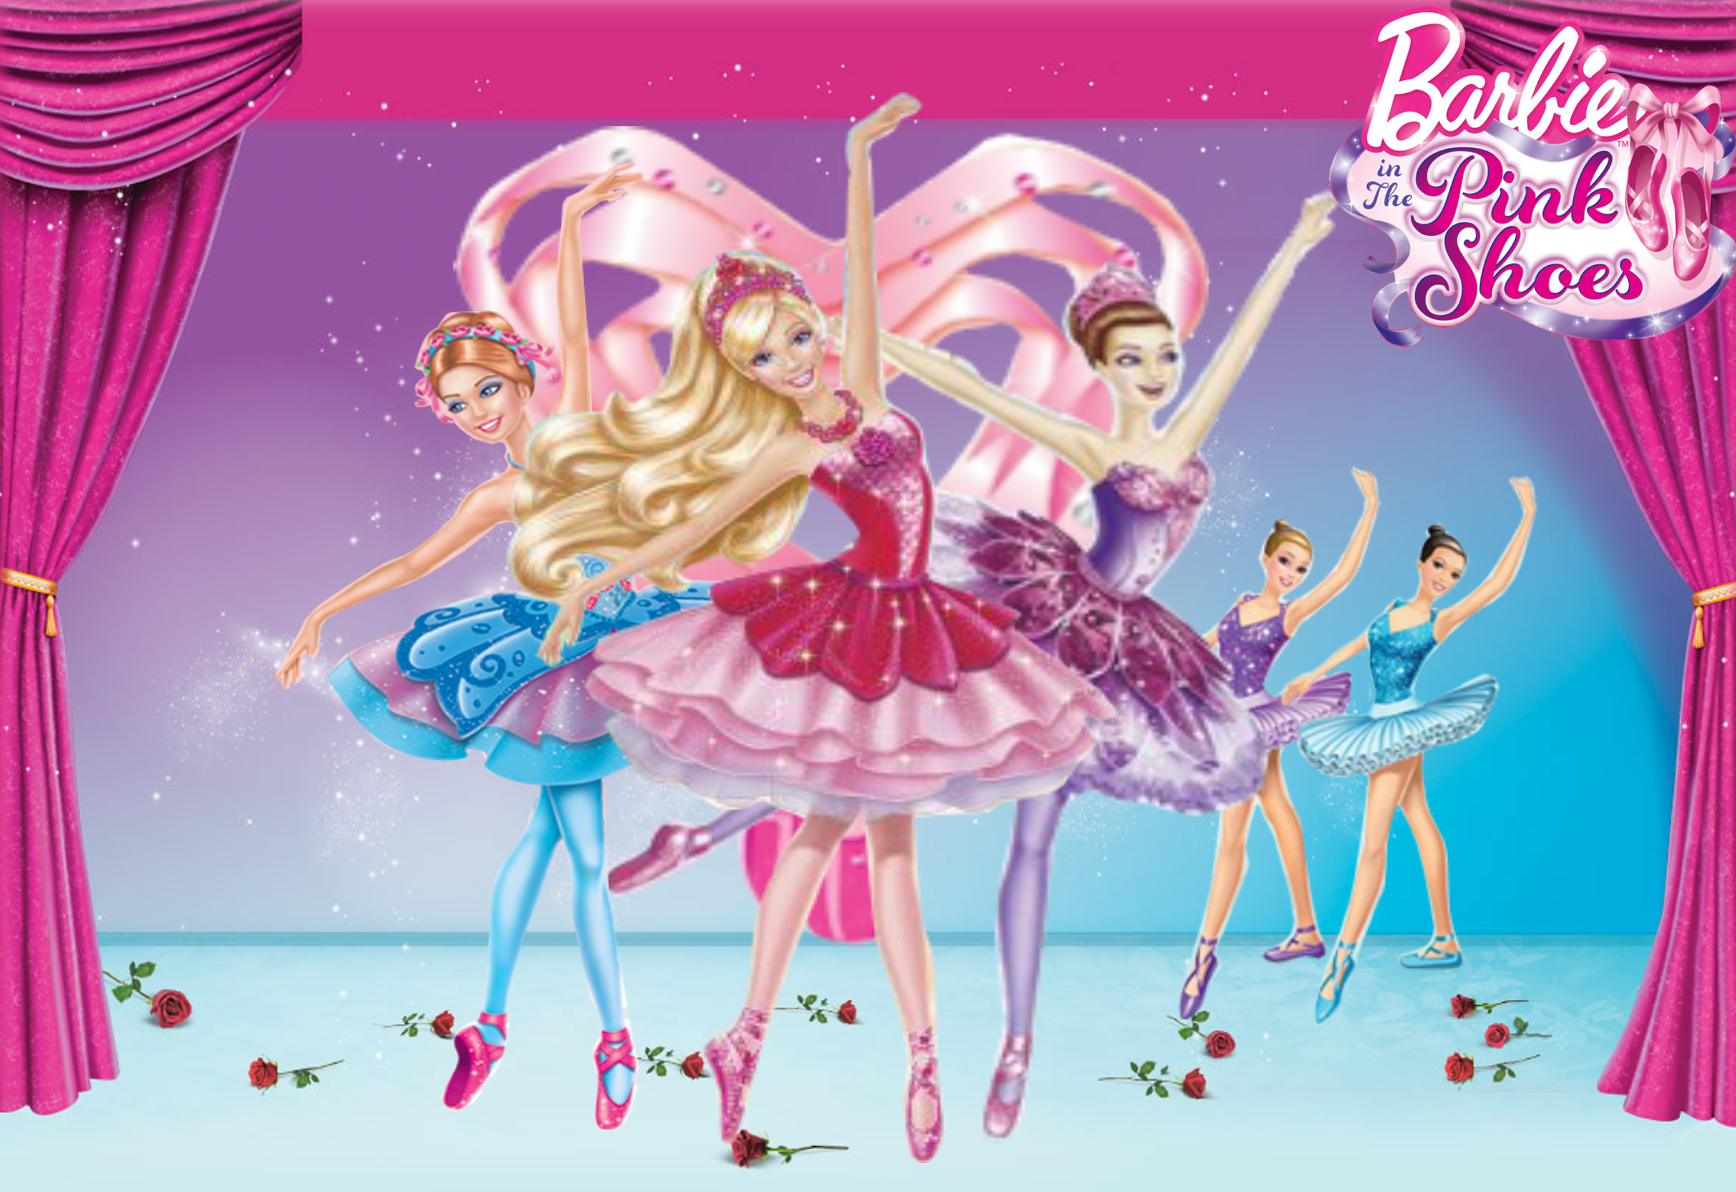 Barbie In The Pink Shoes Wallpaper by RavenVillanuevaT2P ...